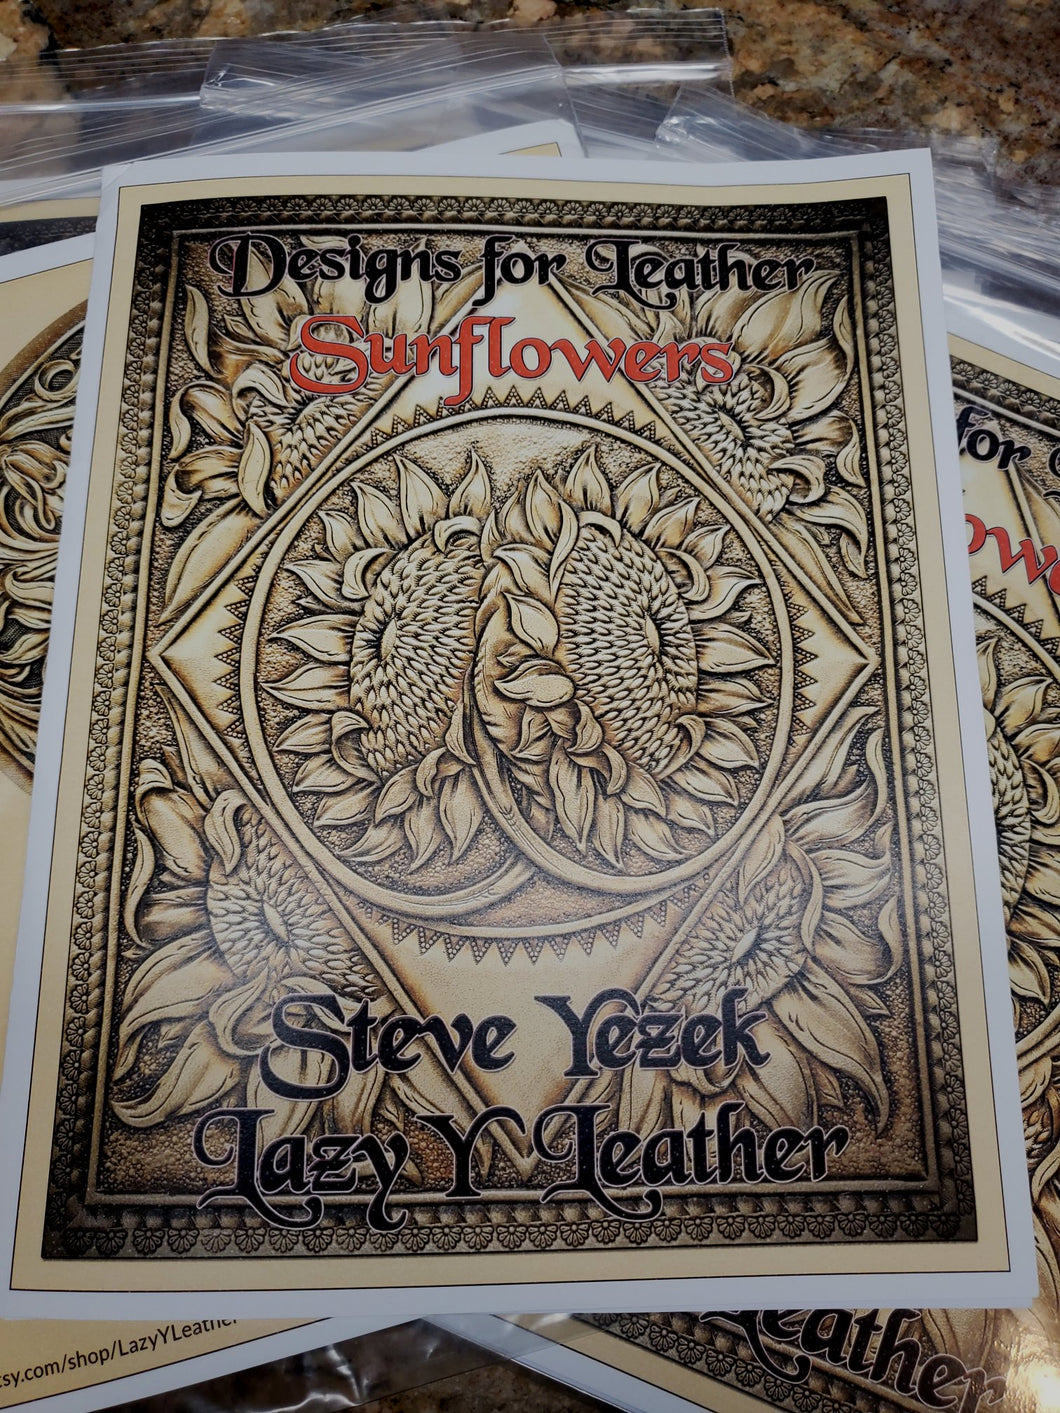 Designs for Leather Sunflower Pattern Pack #2 by Steve Yezek